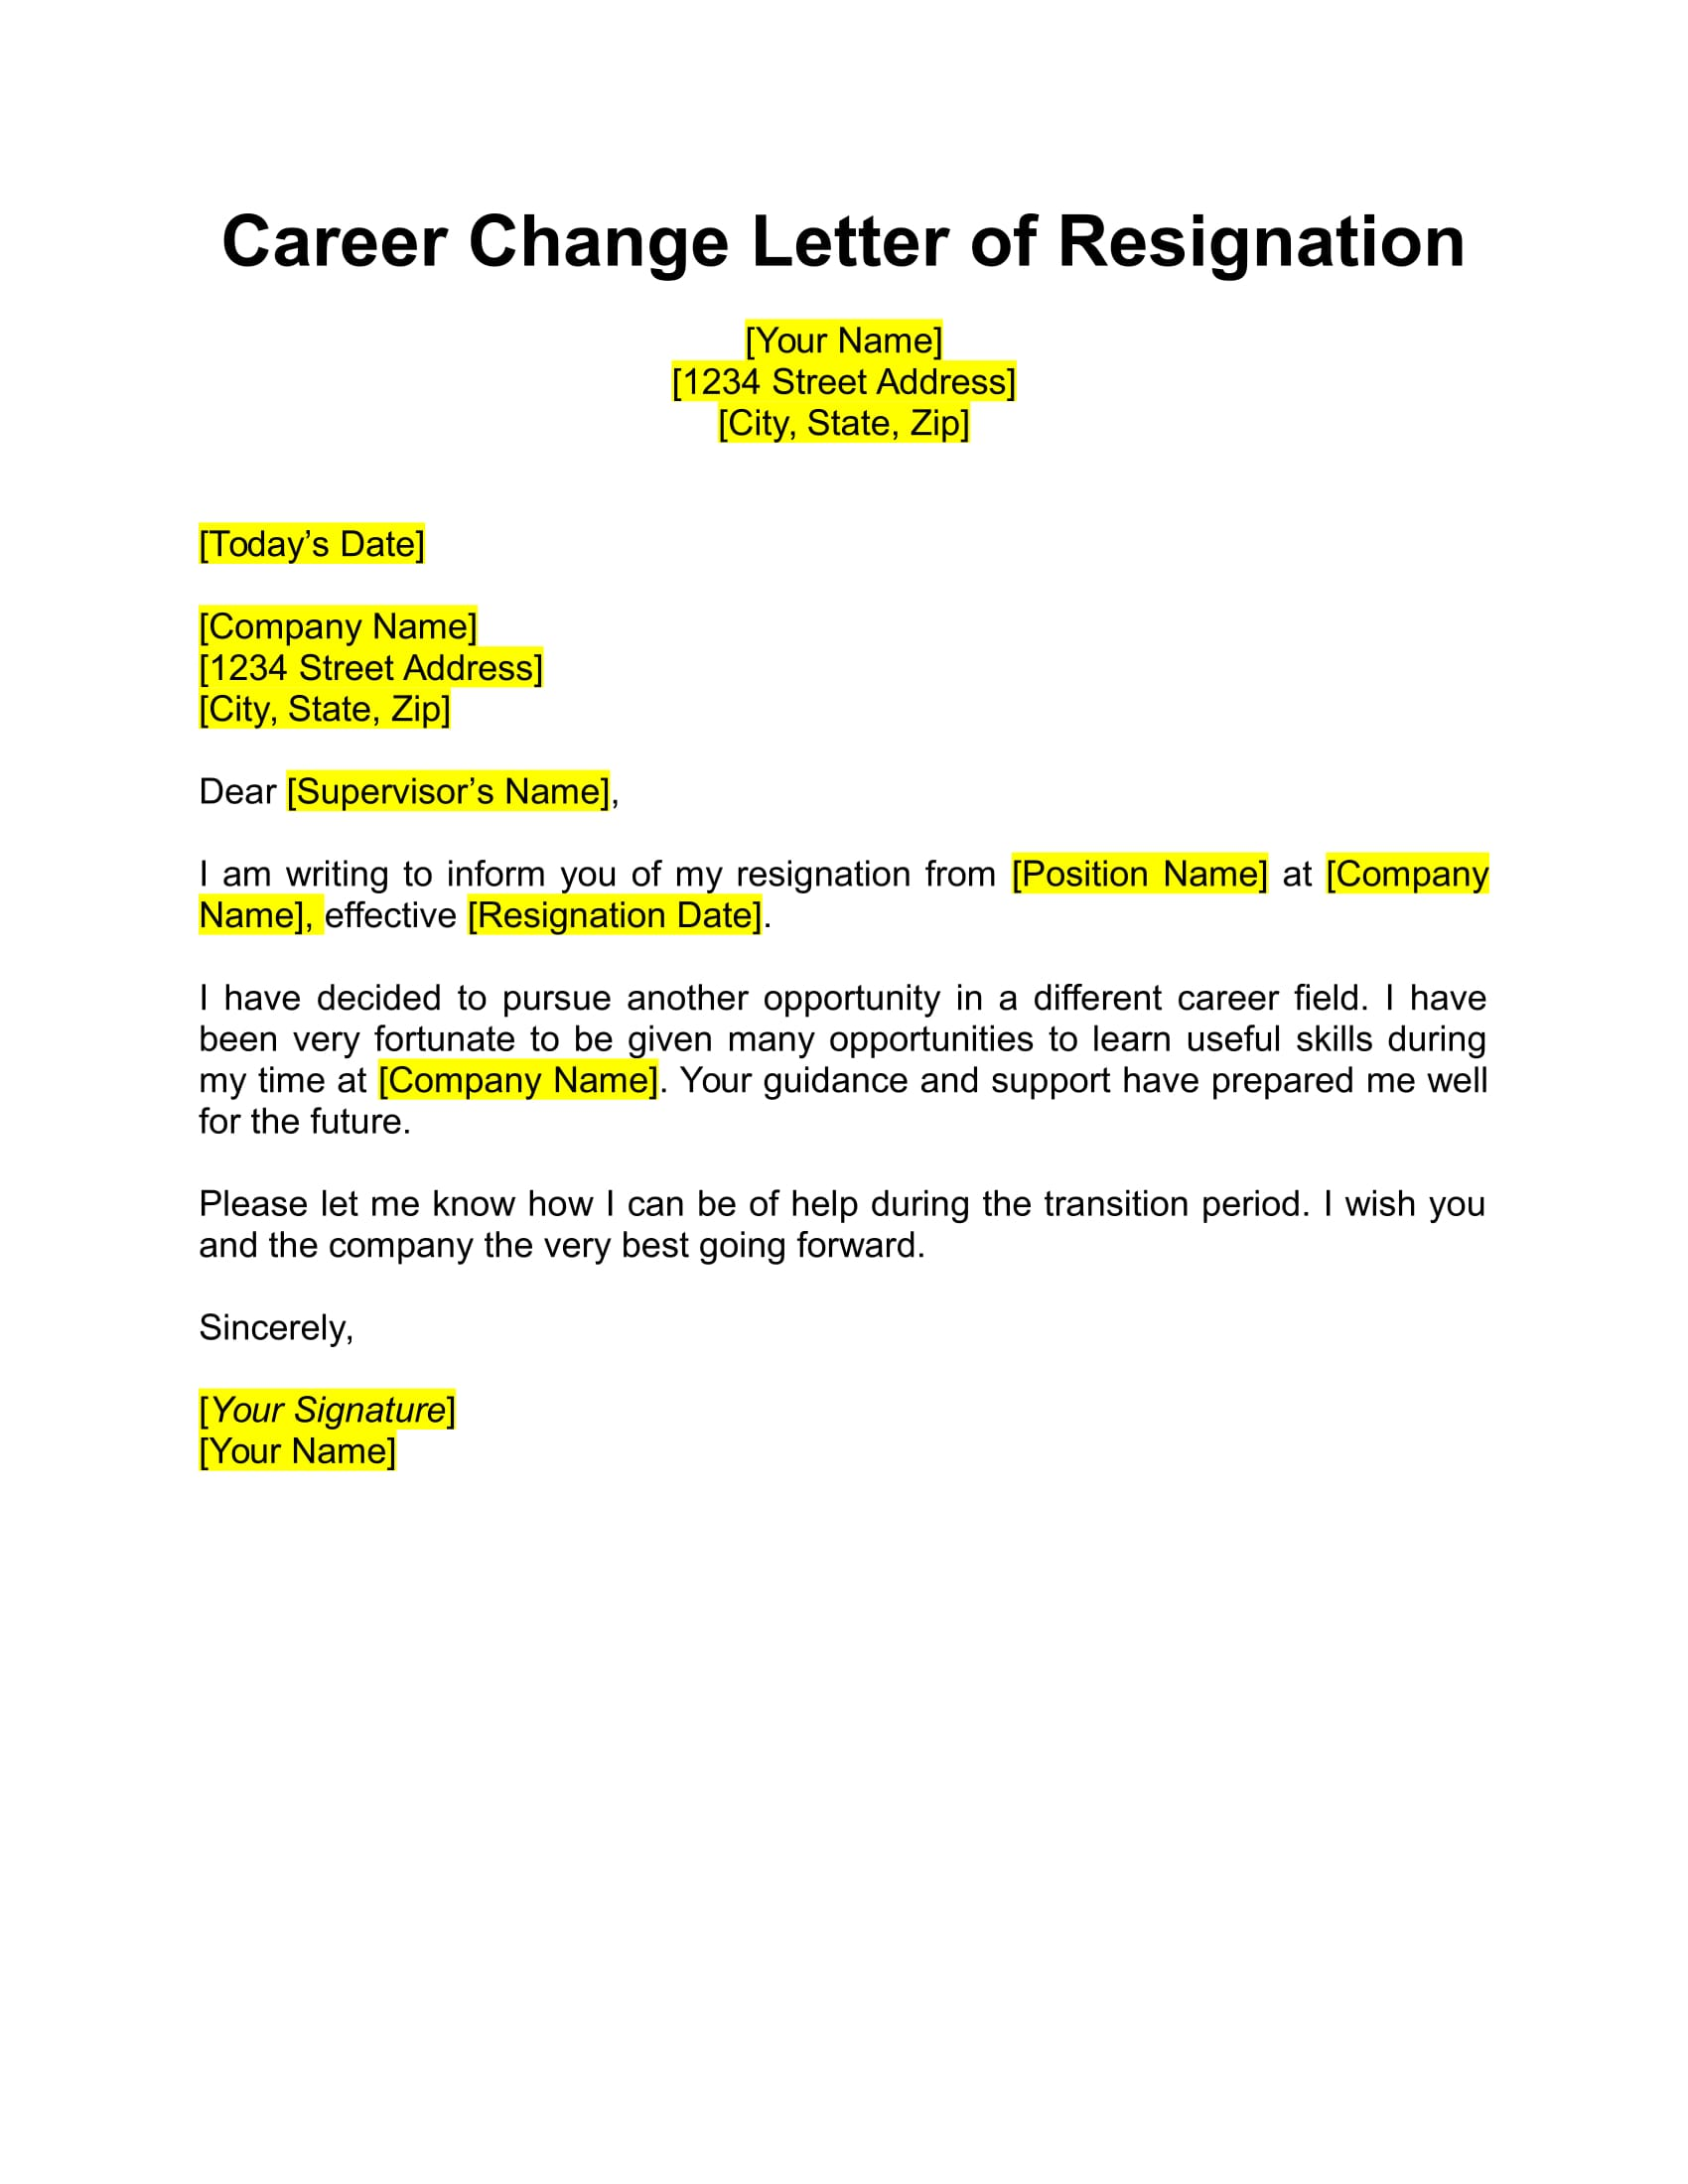 Resignation Letter Career Change Example Career Change Resignation